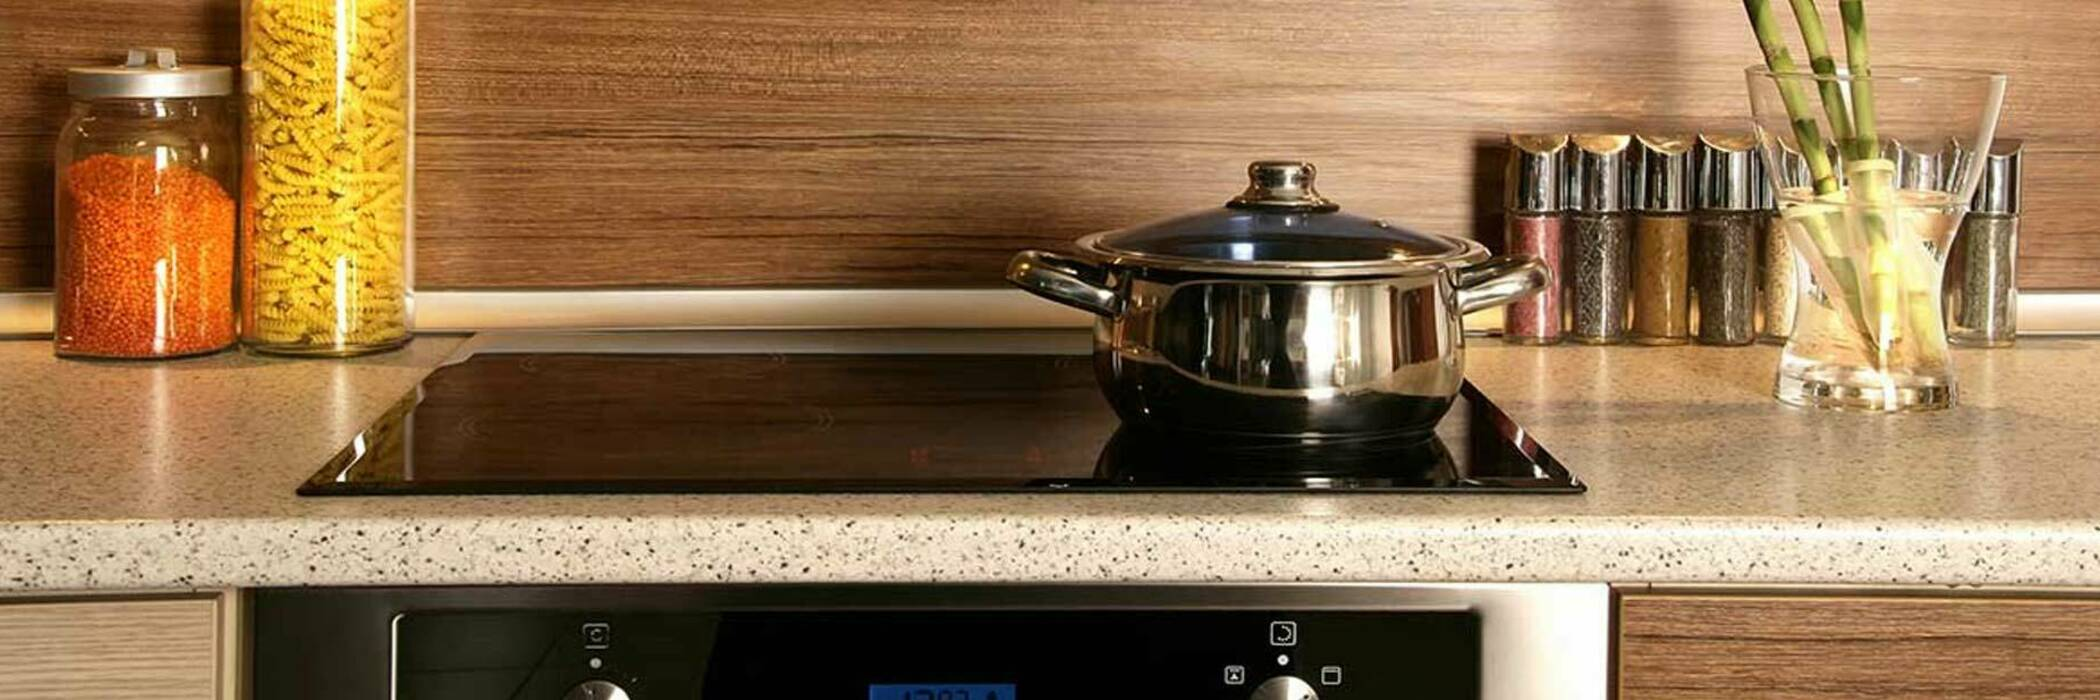 Modern oven and cooktop.